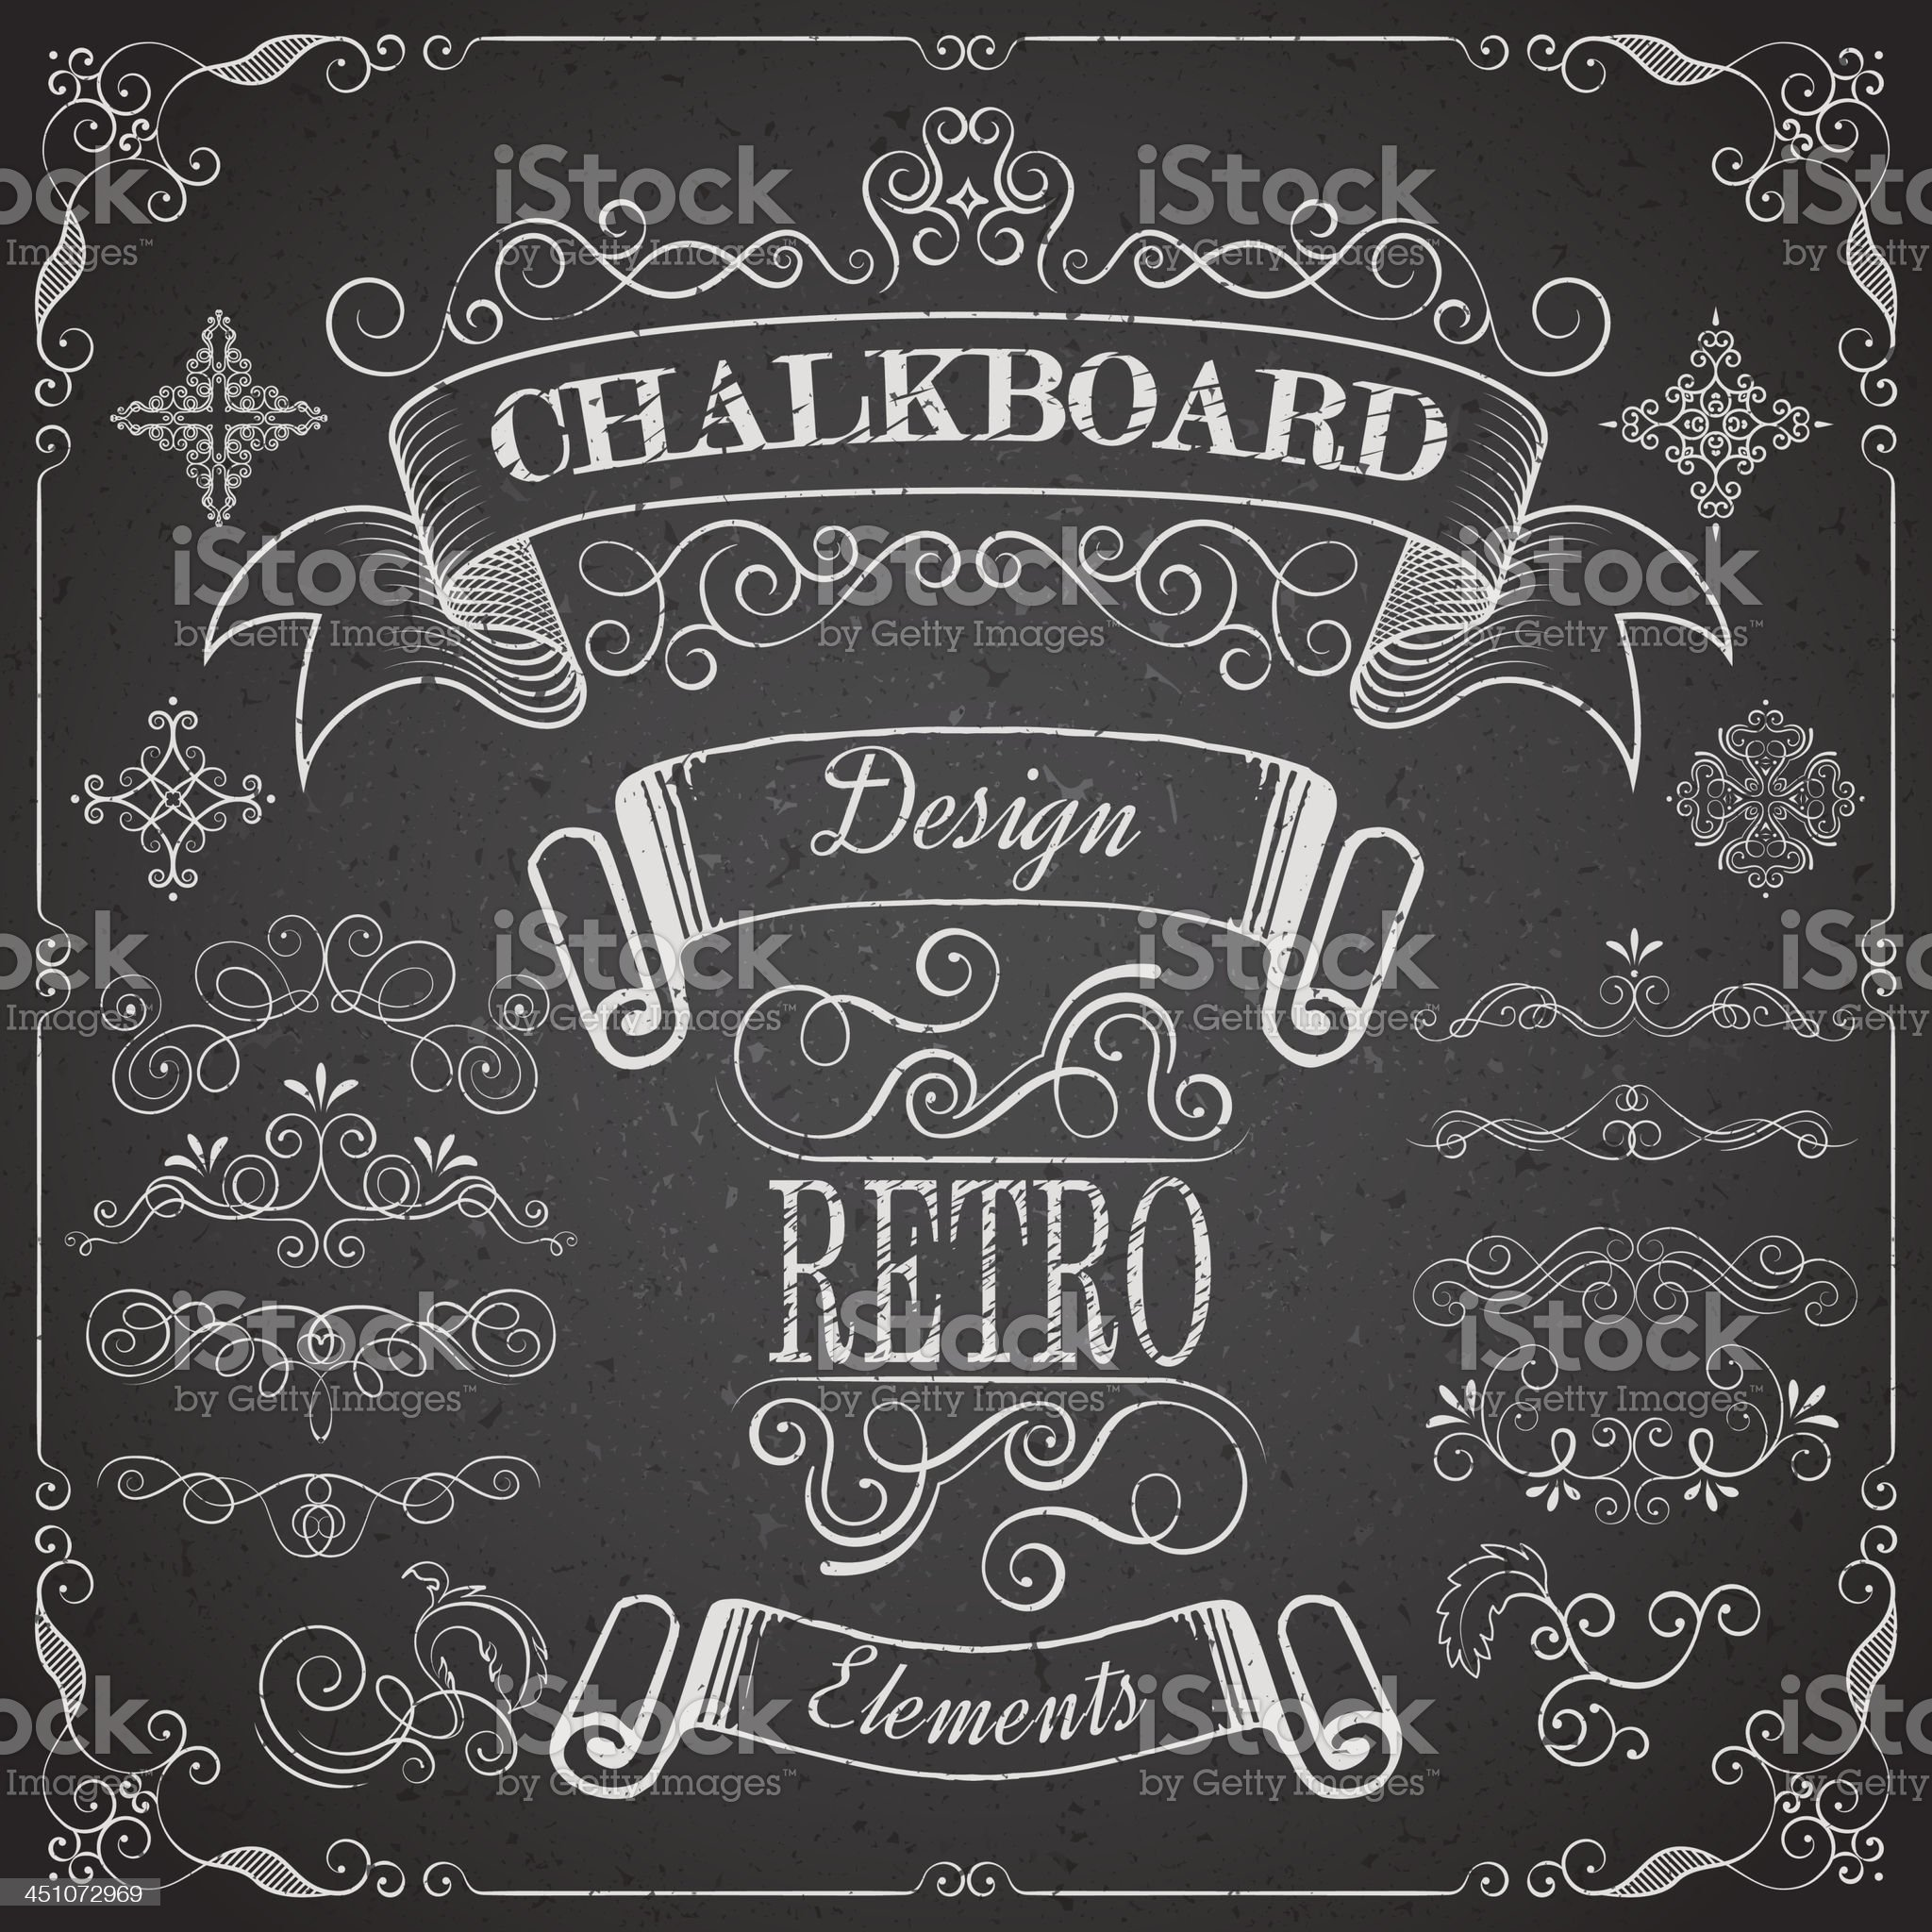 Retro scroll dividers and icons on chalkboard royalty-free stock vector art